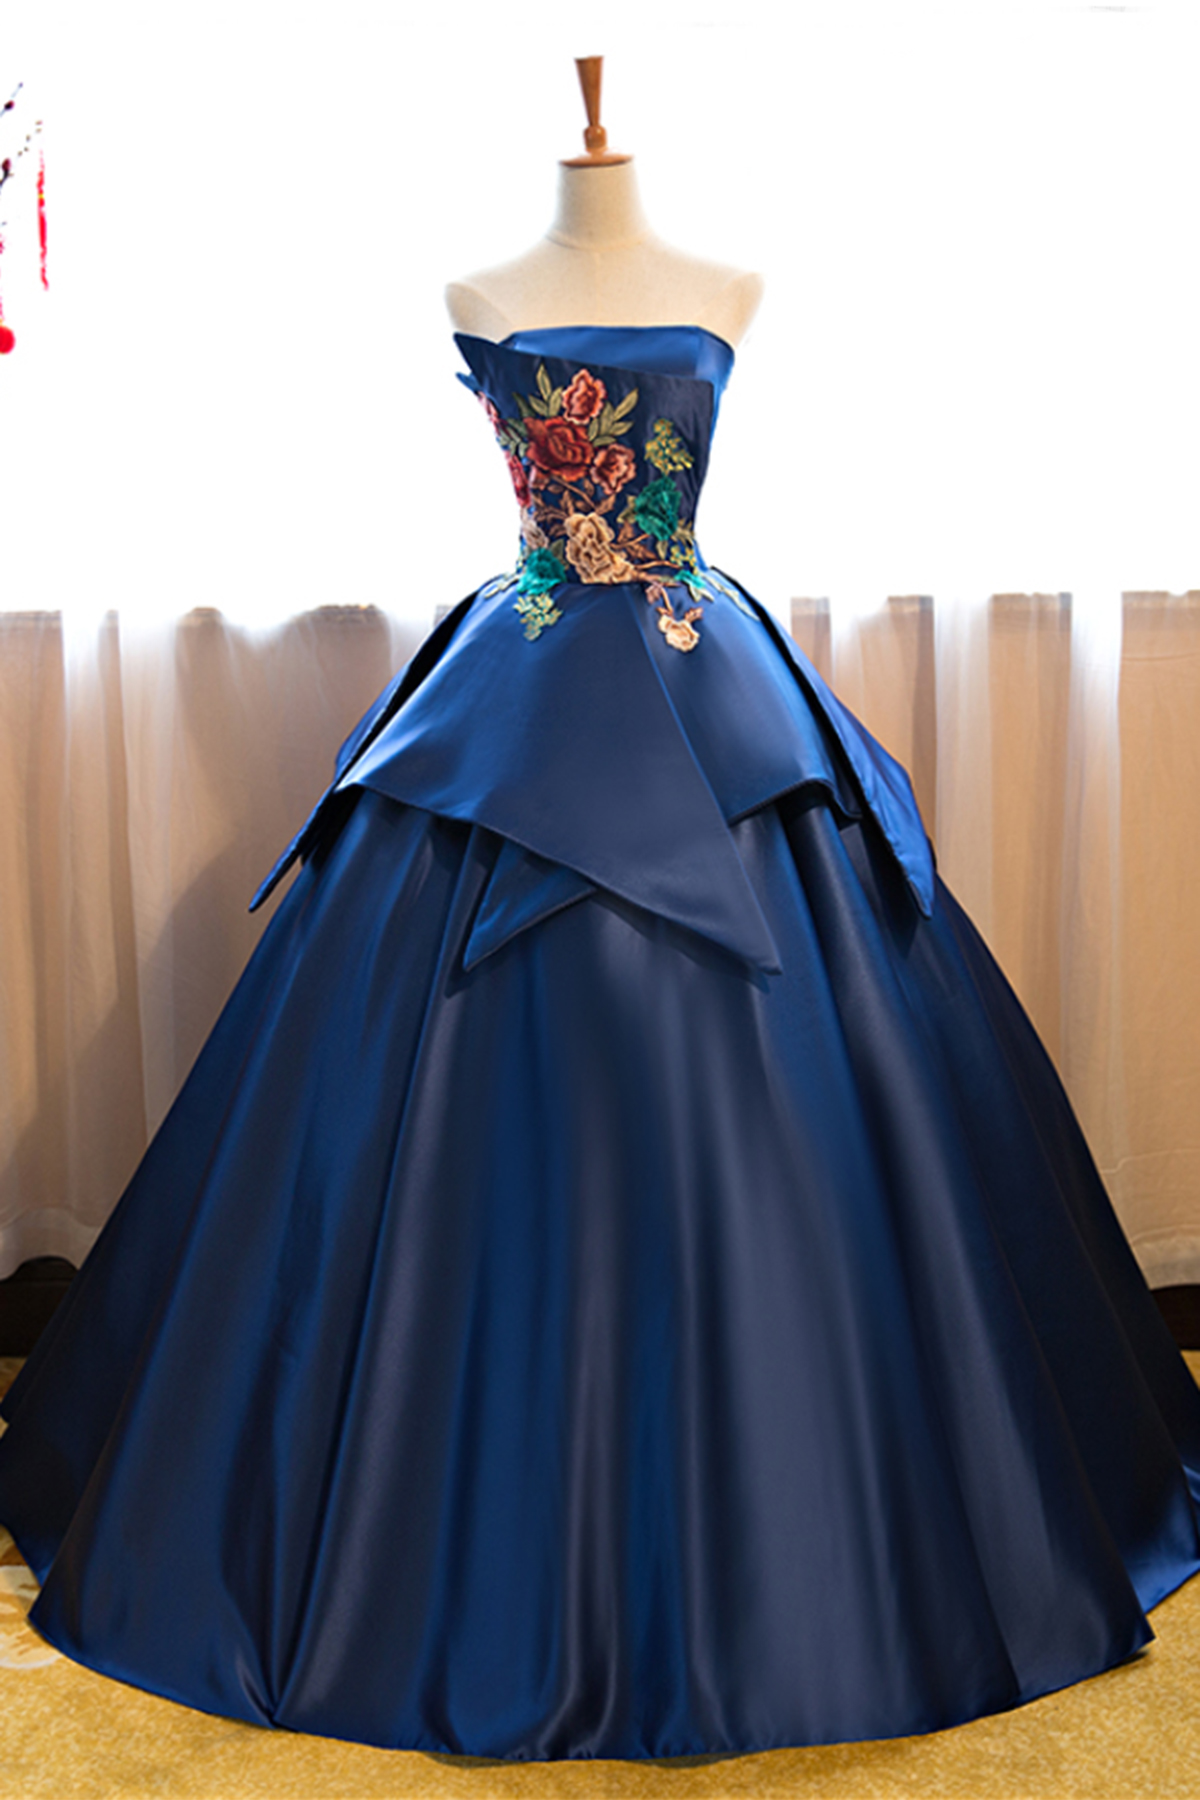 Navy blue strapless long vintage prom dress, long customize evening ...